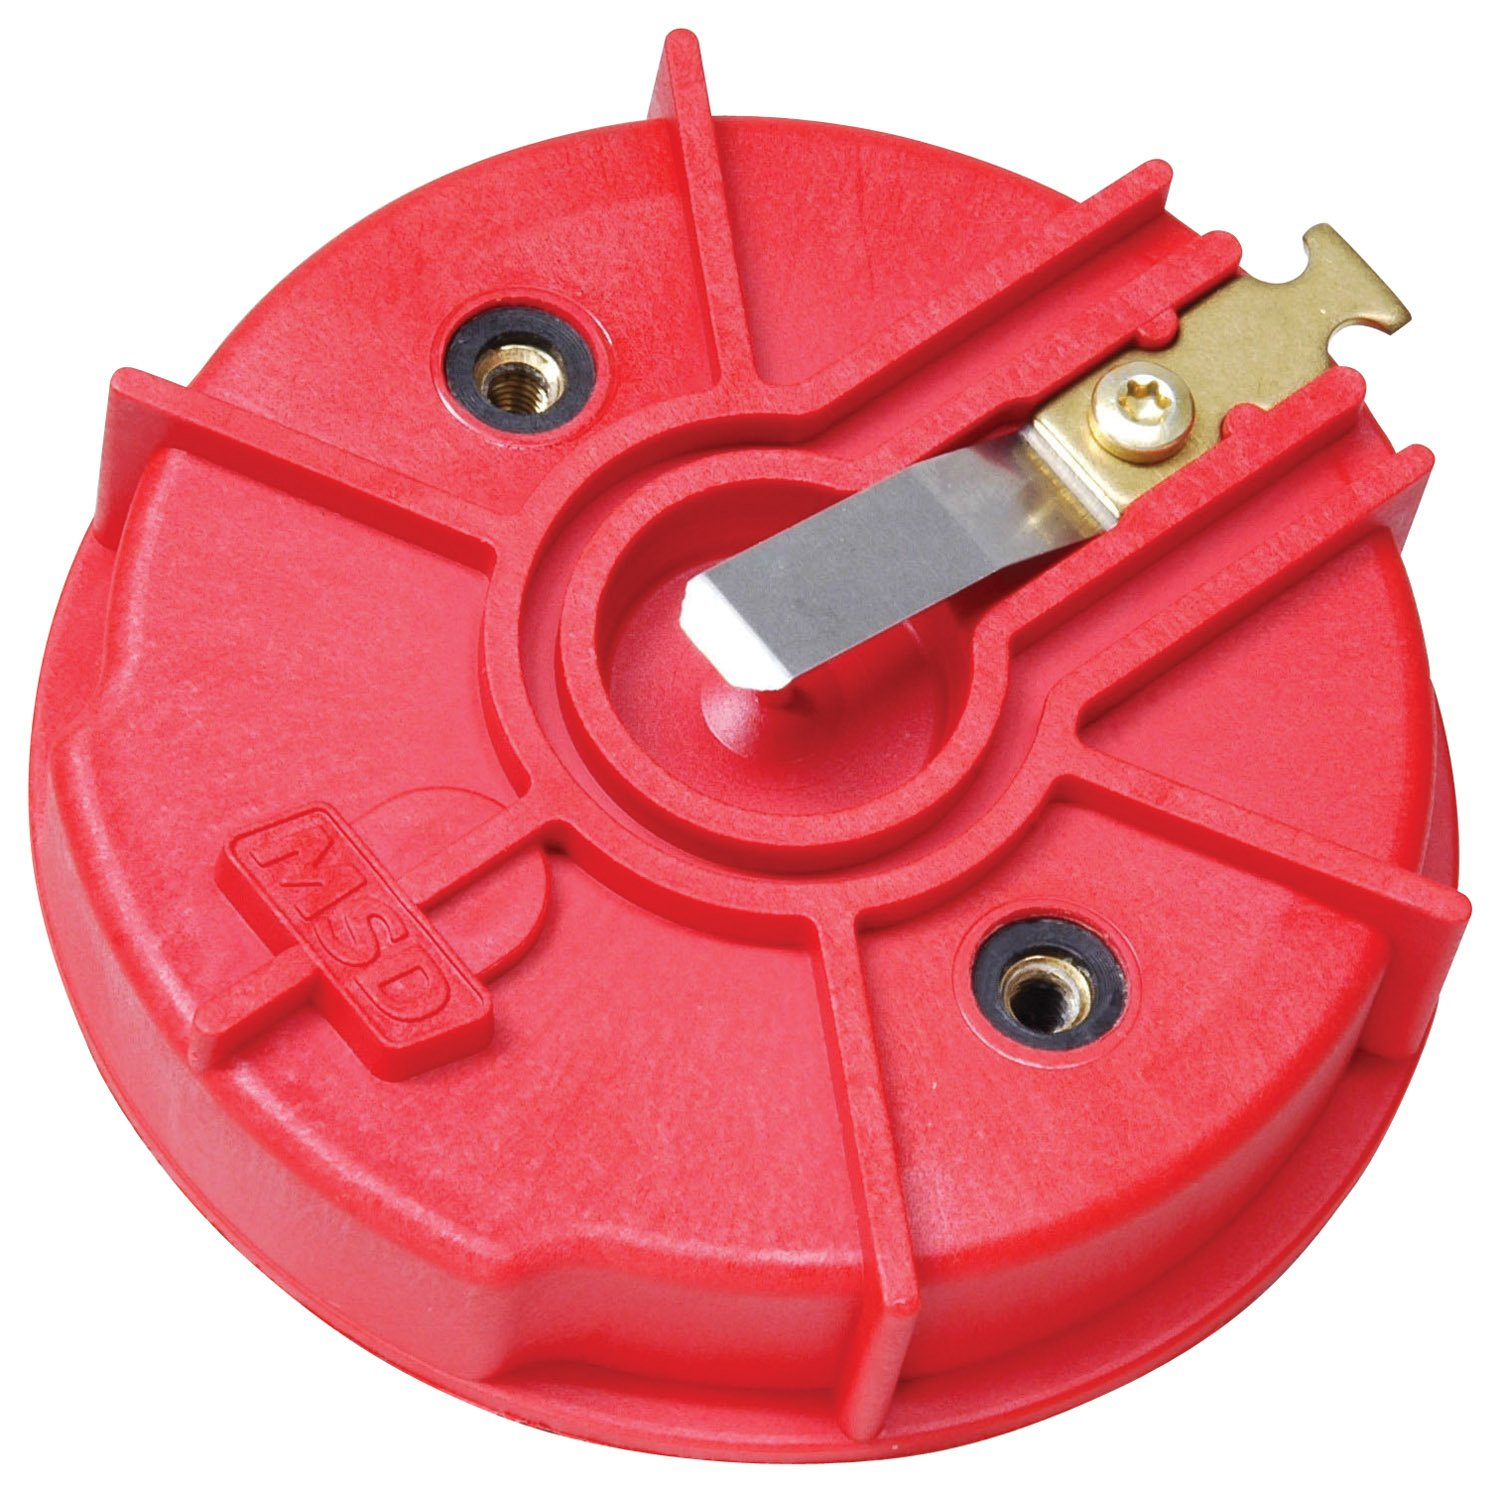 Rotor, Fits LP CT Distributors, PN 84697